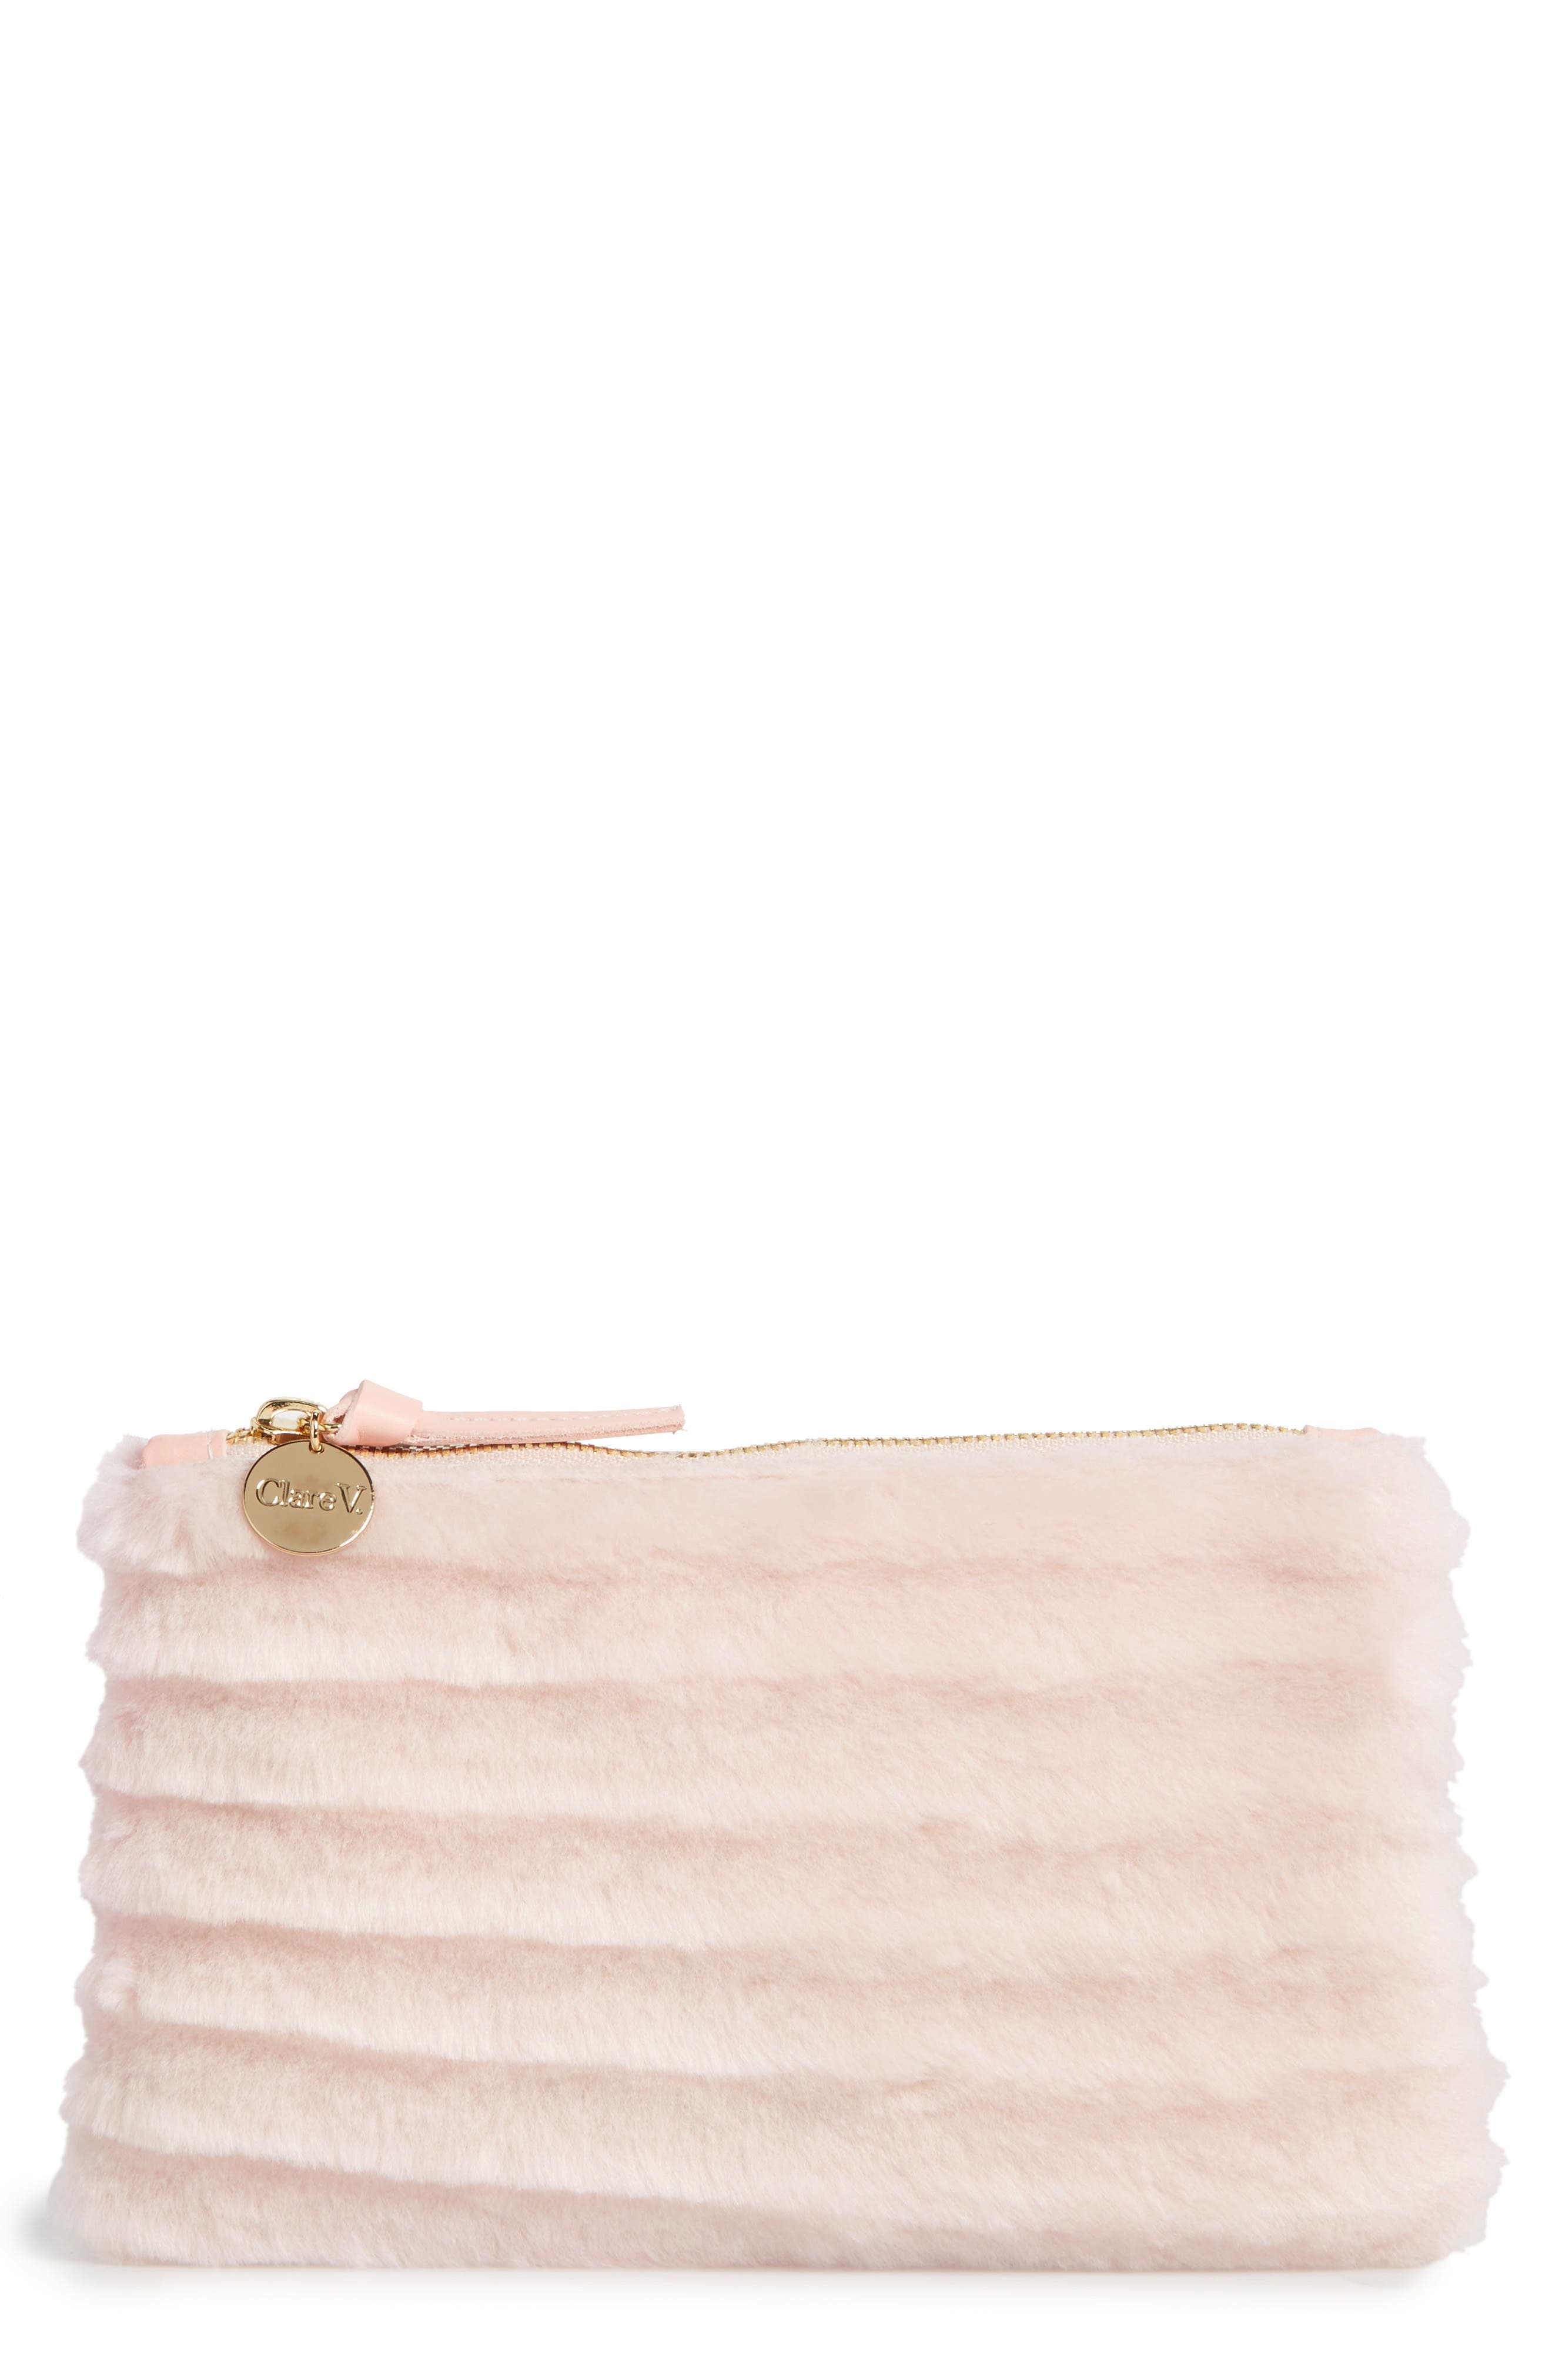 Genuine Shearling Pouch,                             Main thumbnail 1, color,                             650